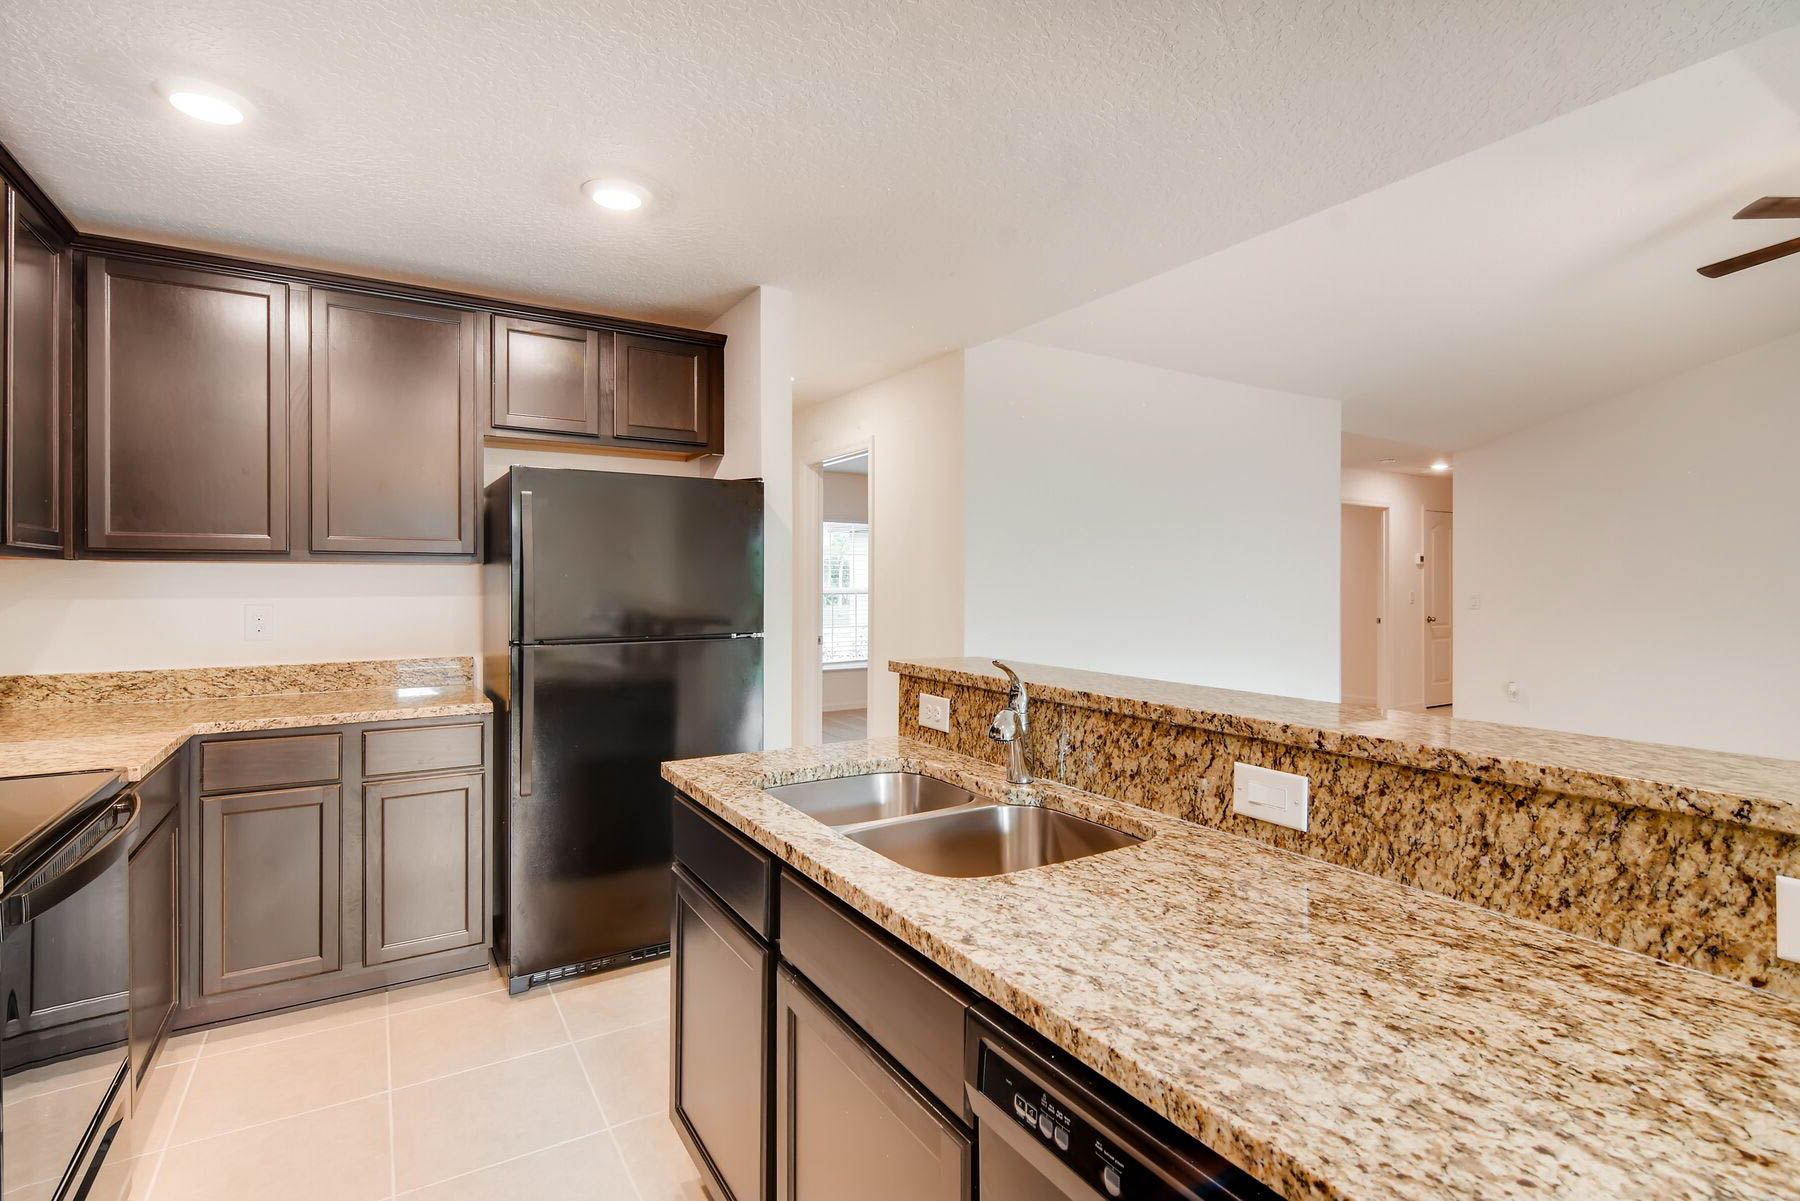 LGI Homes - Port St. Lucie